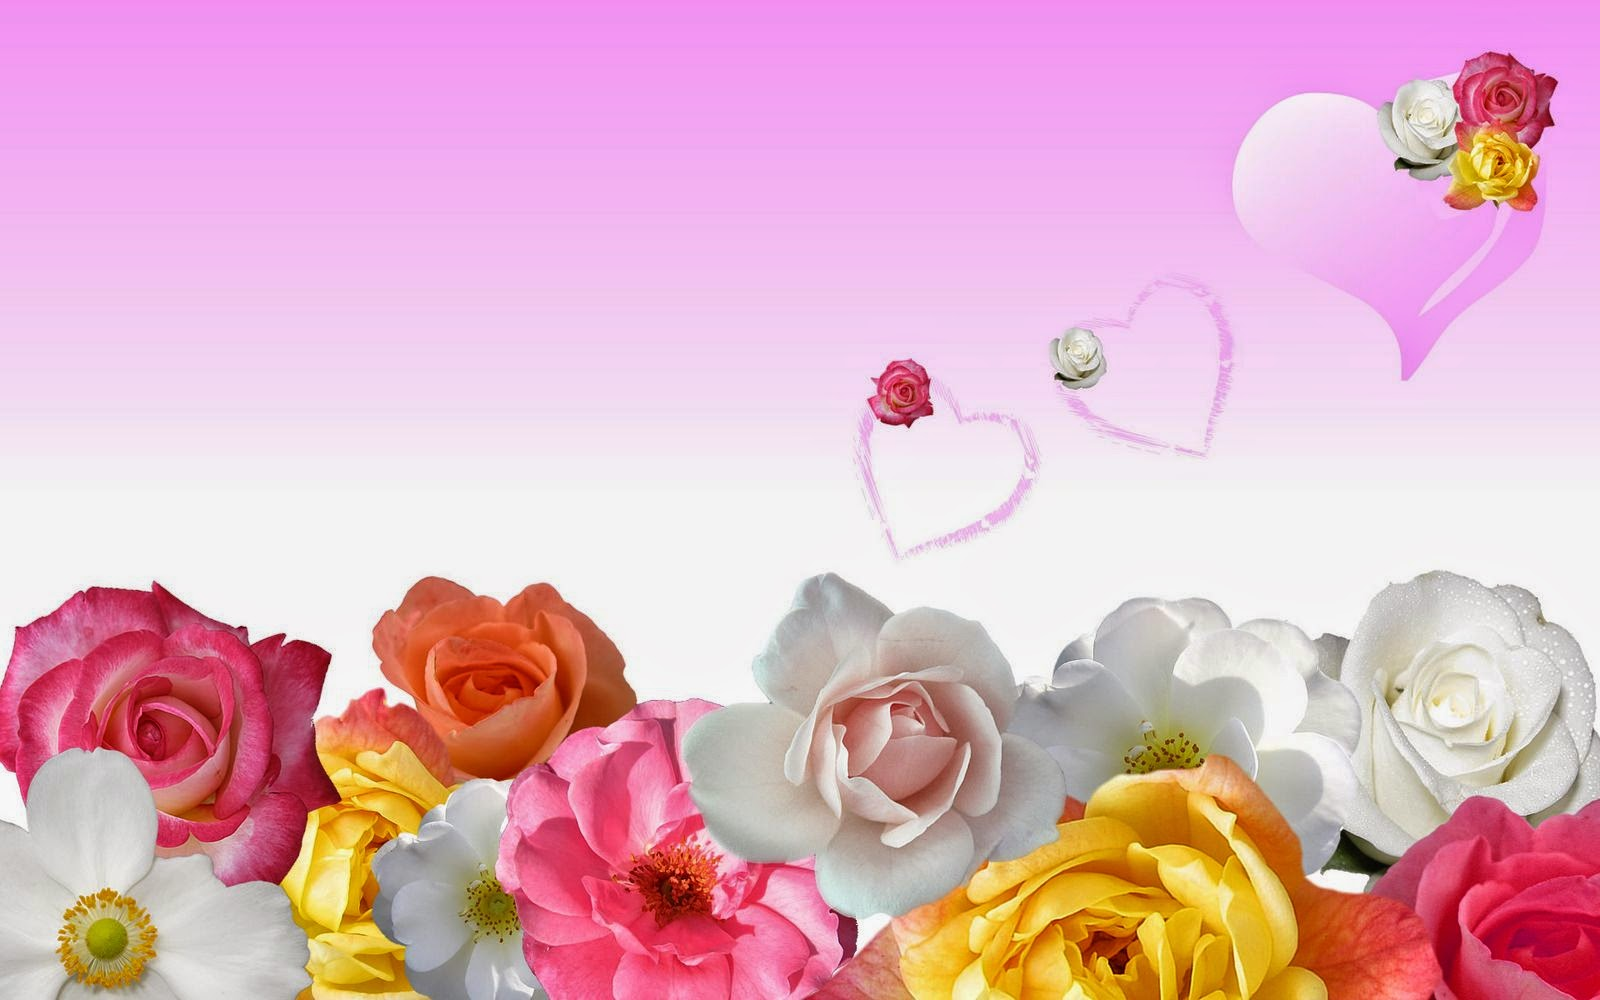 flower-power-wallpaper-rose